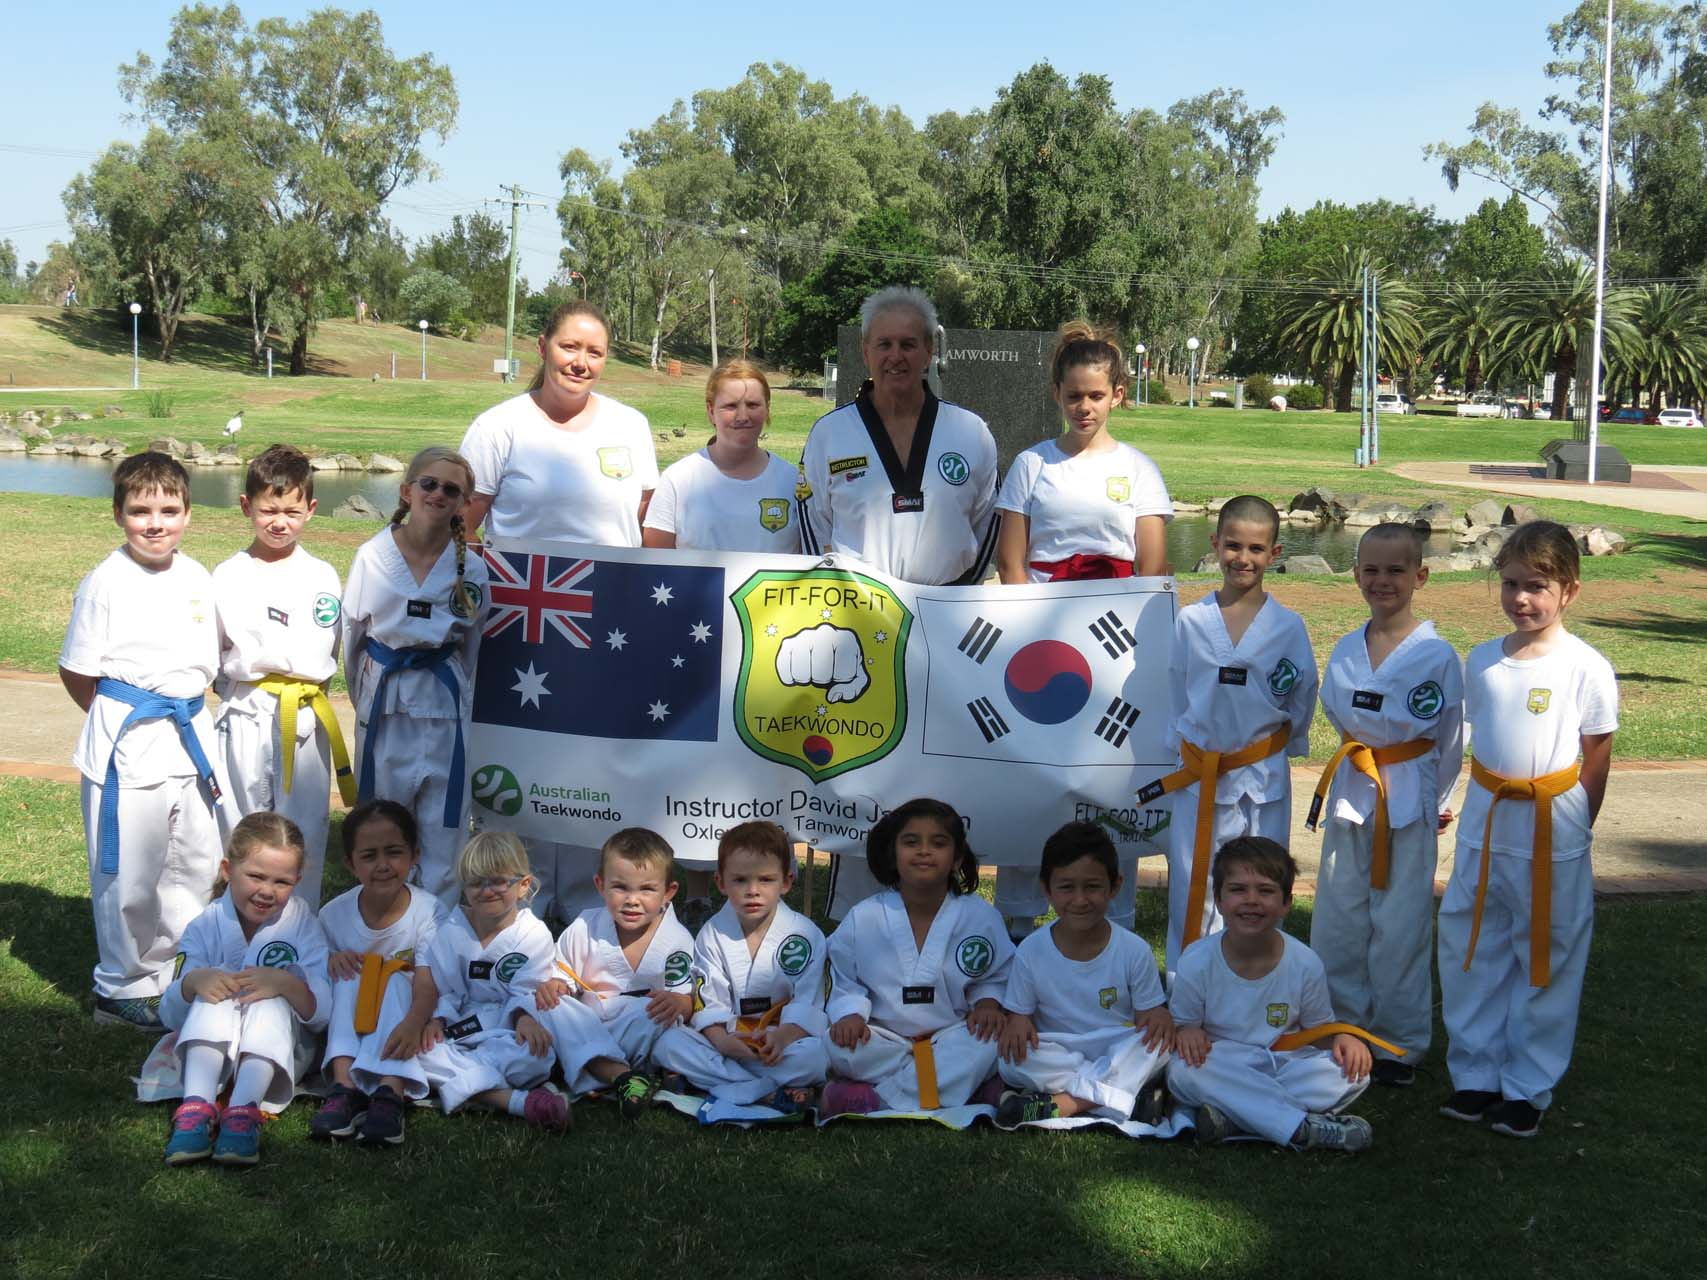 Martial arts students getting their photo taken with their instructor outside in Tamworth.